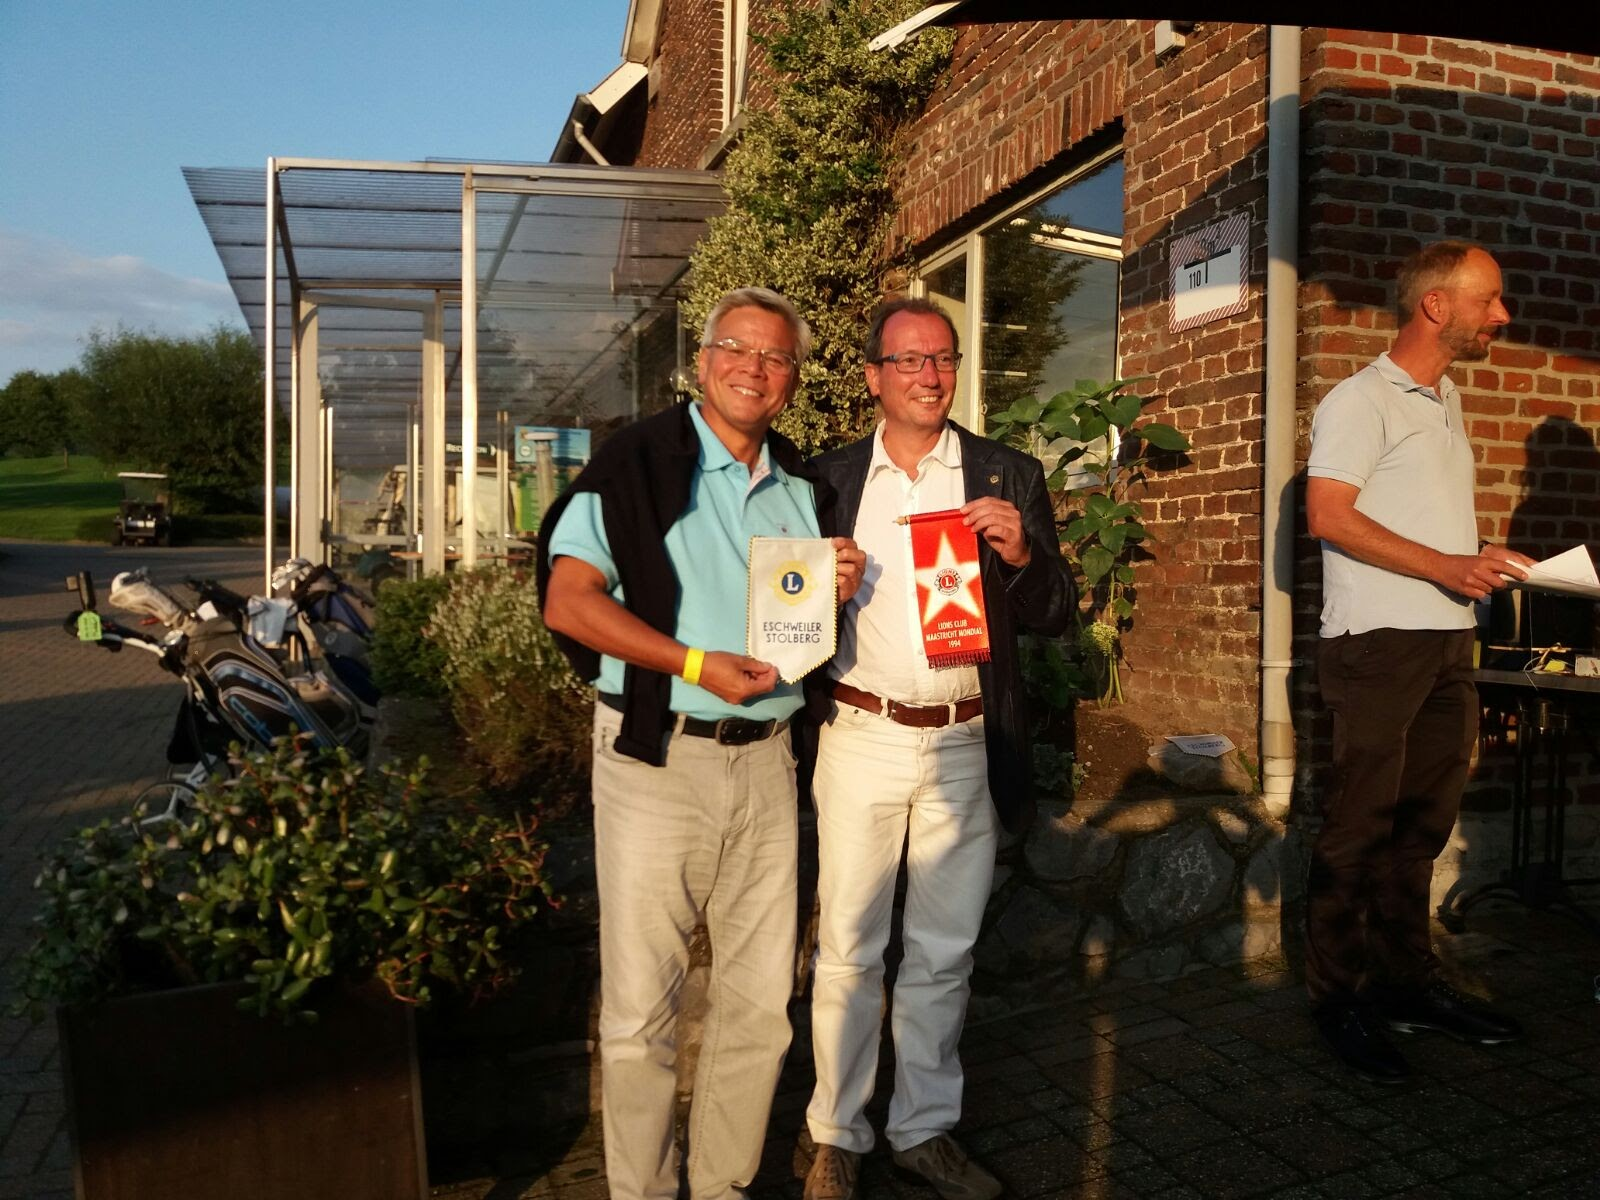 The presidents of Lions club Maastricht Mondial and Eshweiler-Stolberg